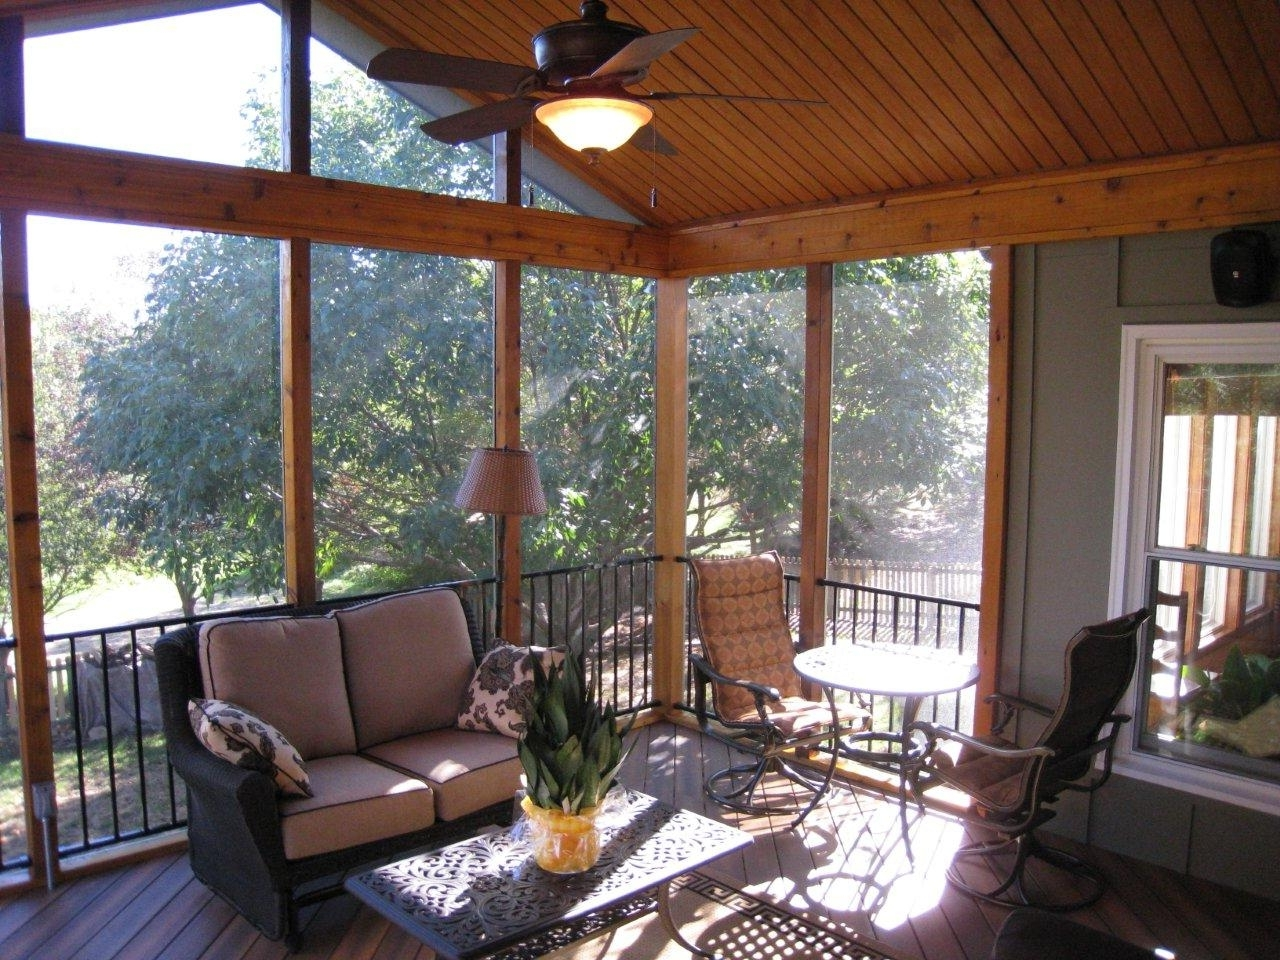 Outdoor Ceiling Fans For Porches Within Most Recently Released Low Profile Outdoor Ceiling Fans With Light In Farmhouse With (Gallery 13 of 20)